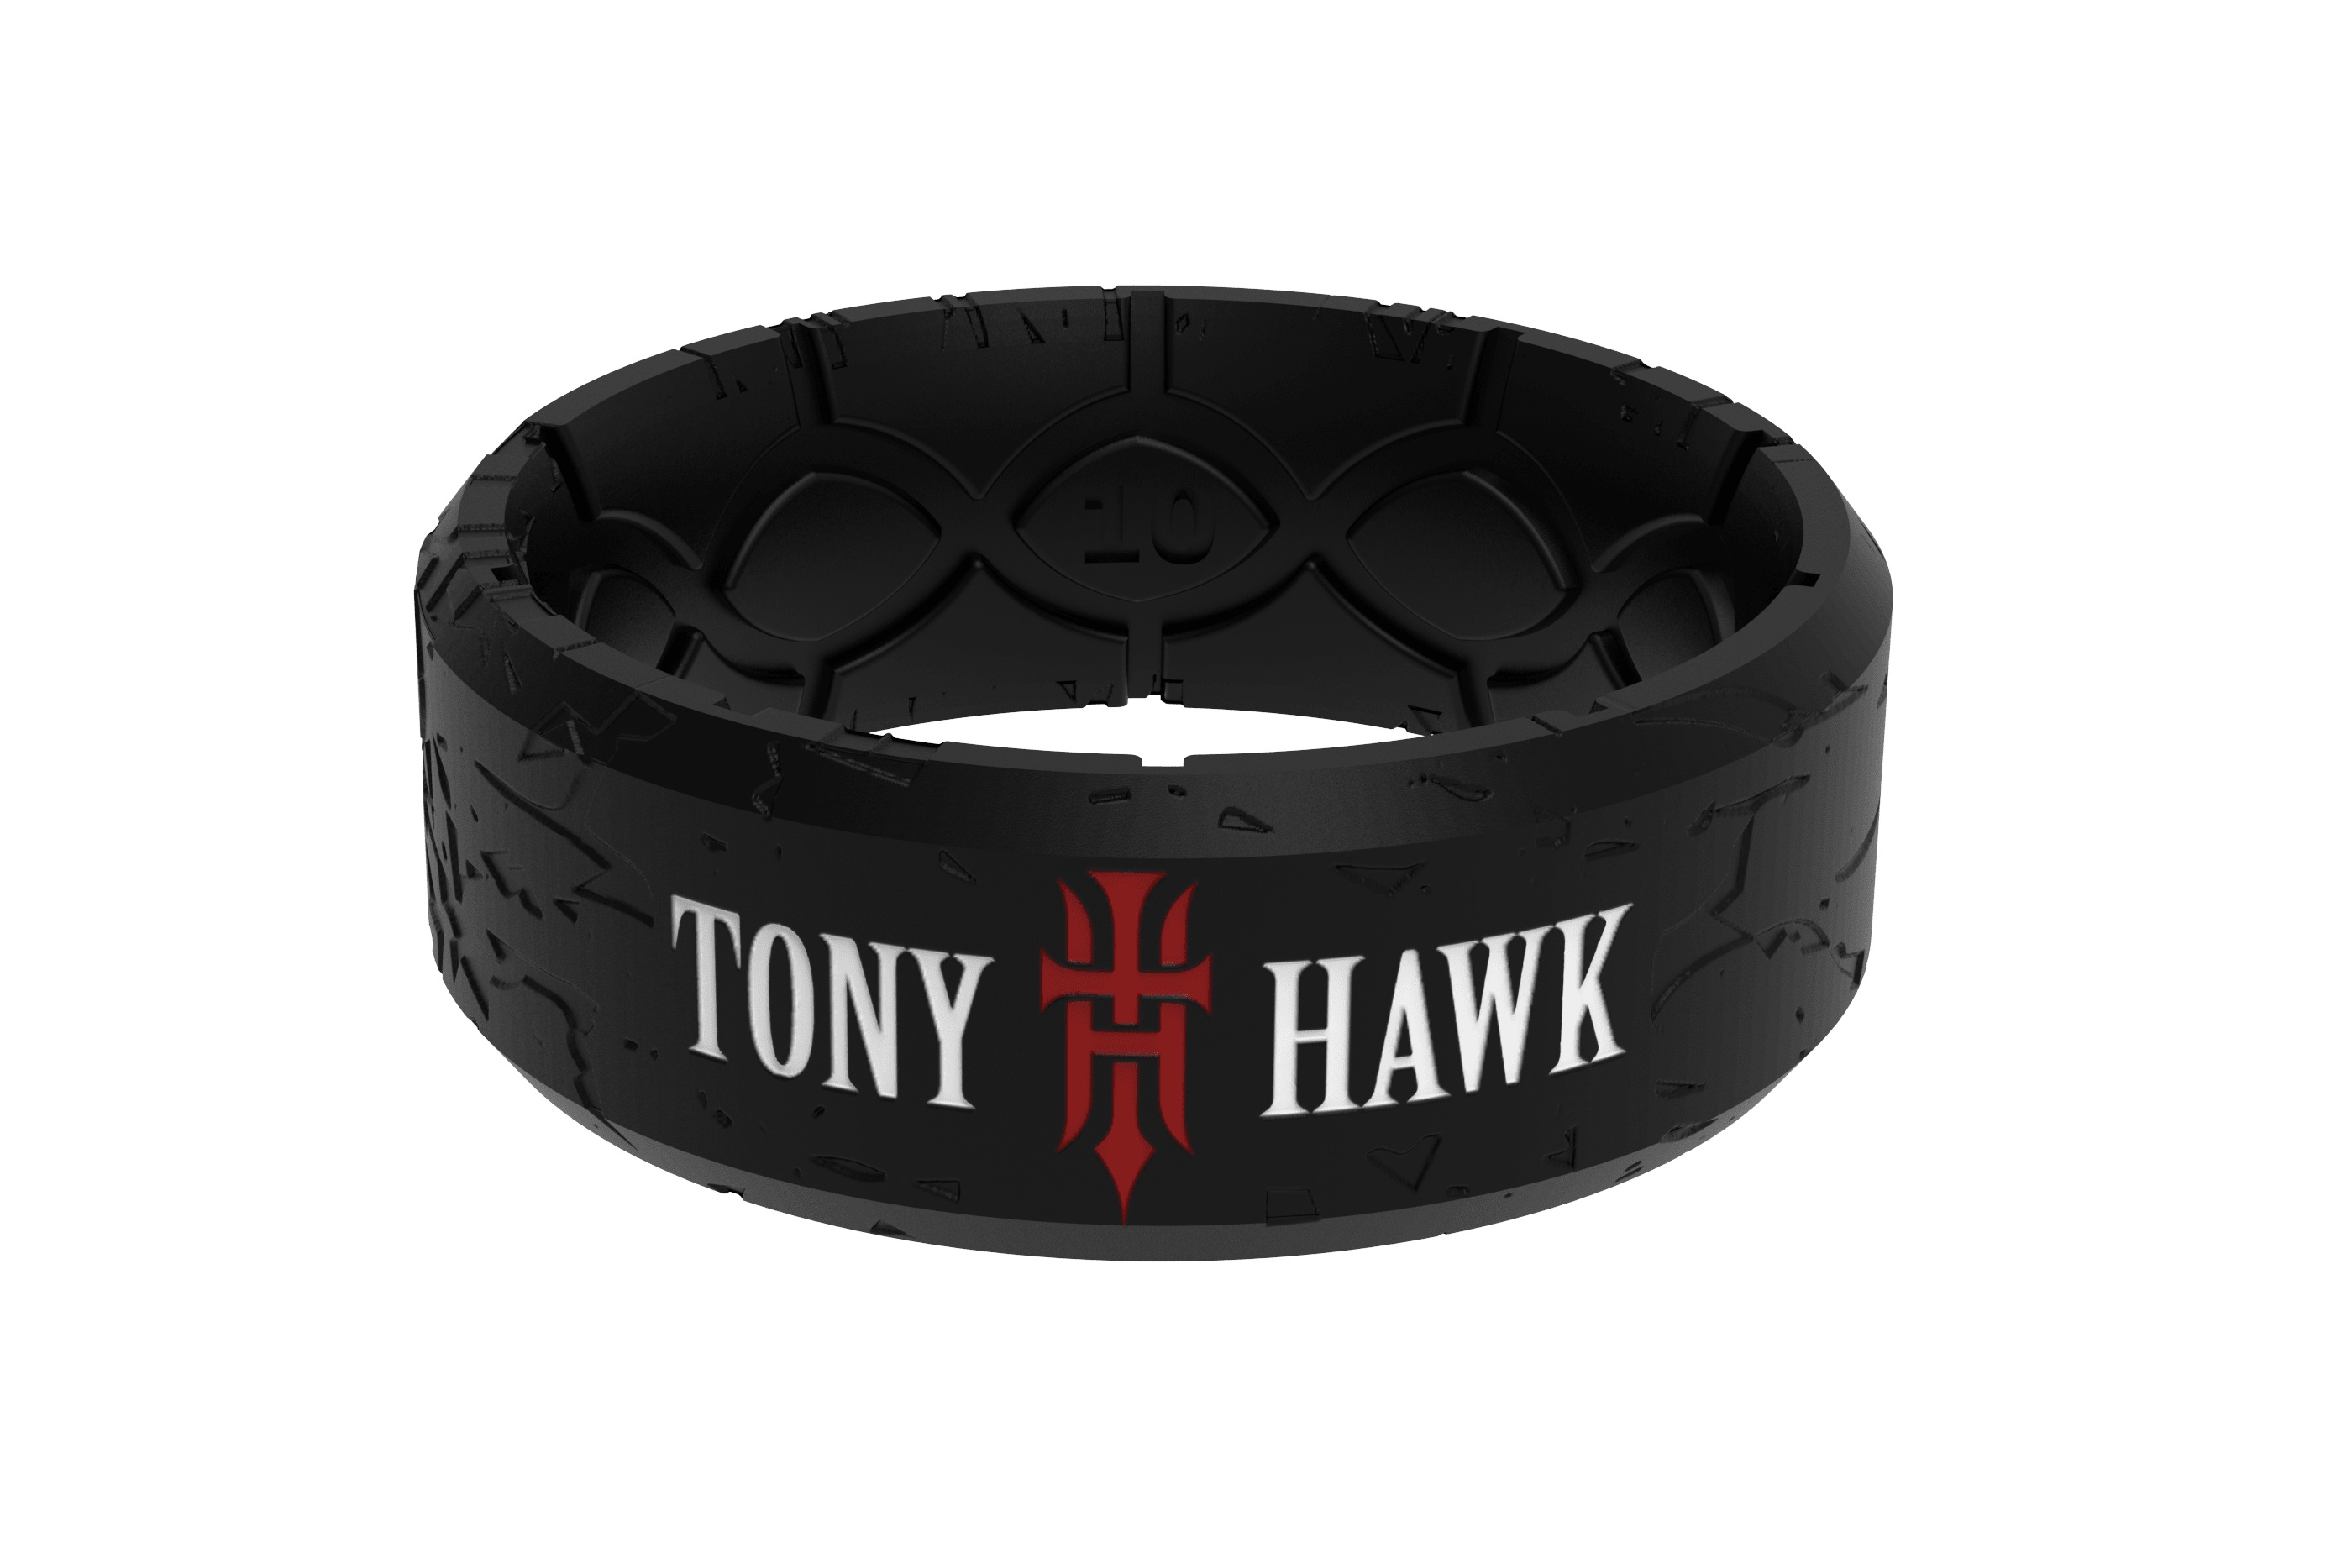 Tony Hawk Grip Tape Ring viewed front on